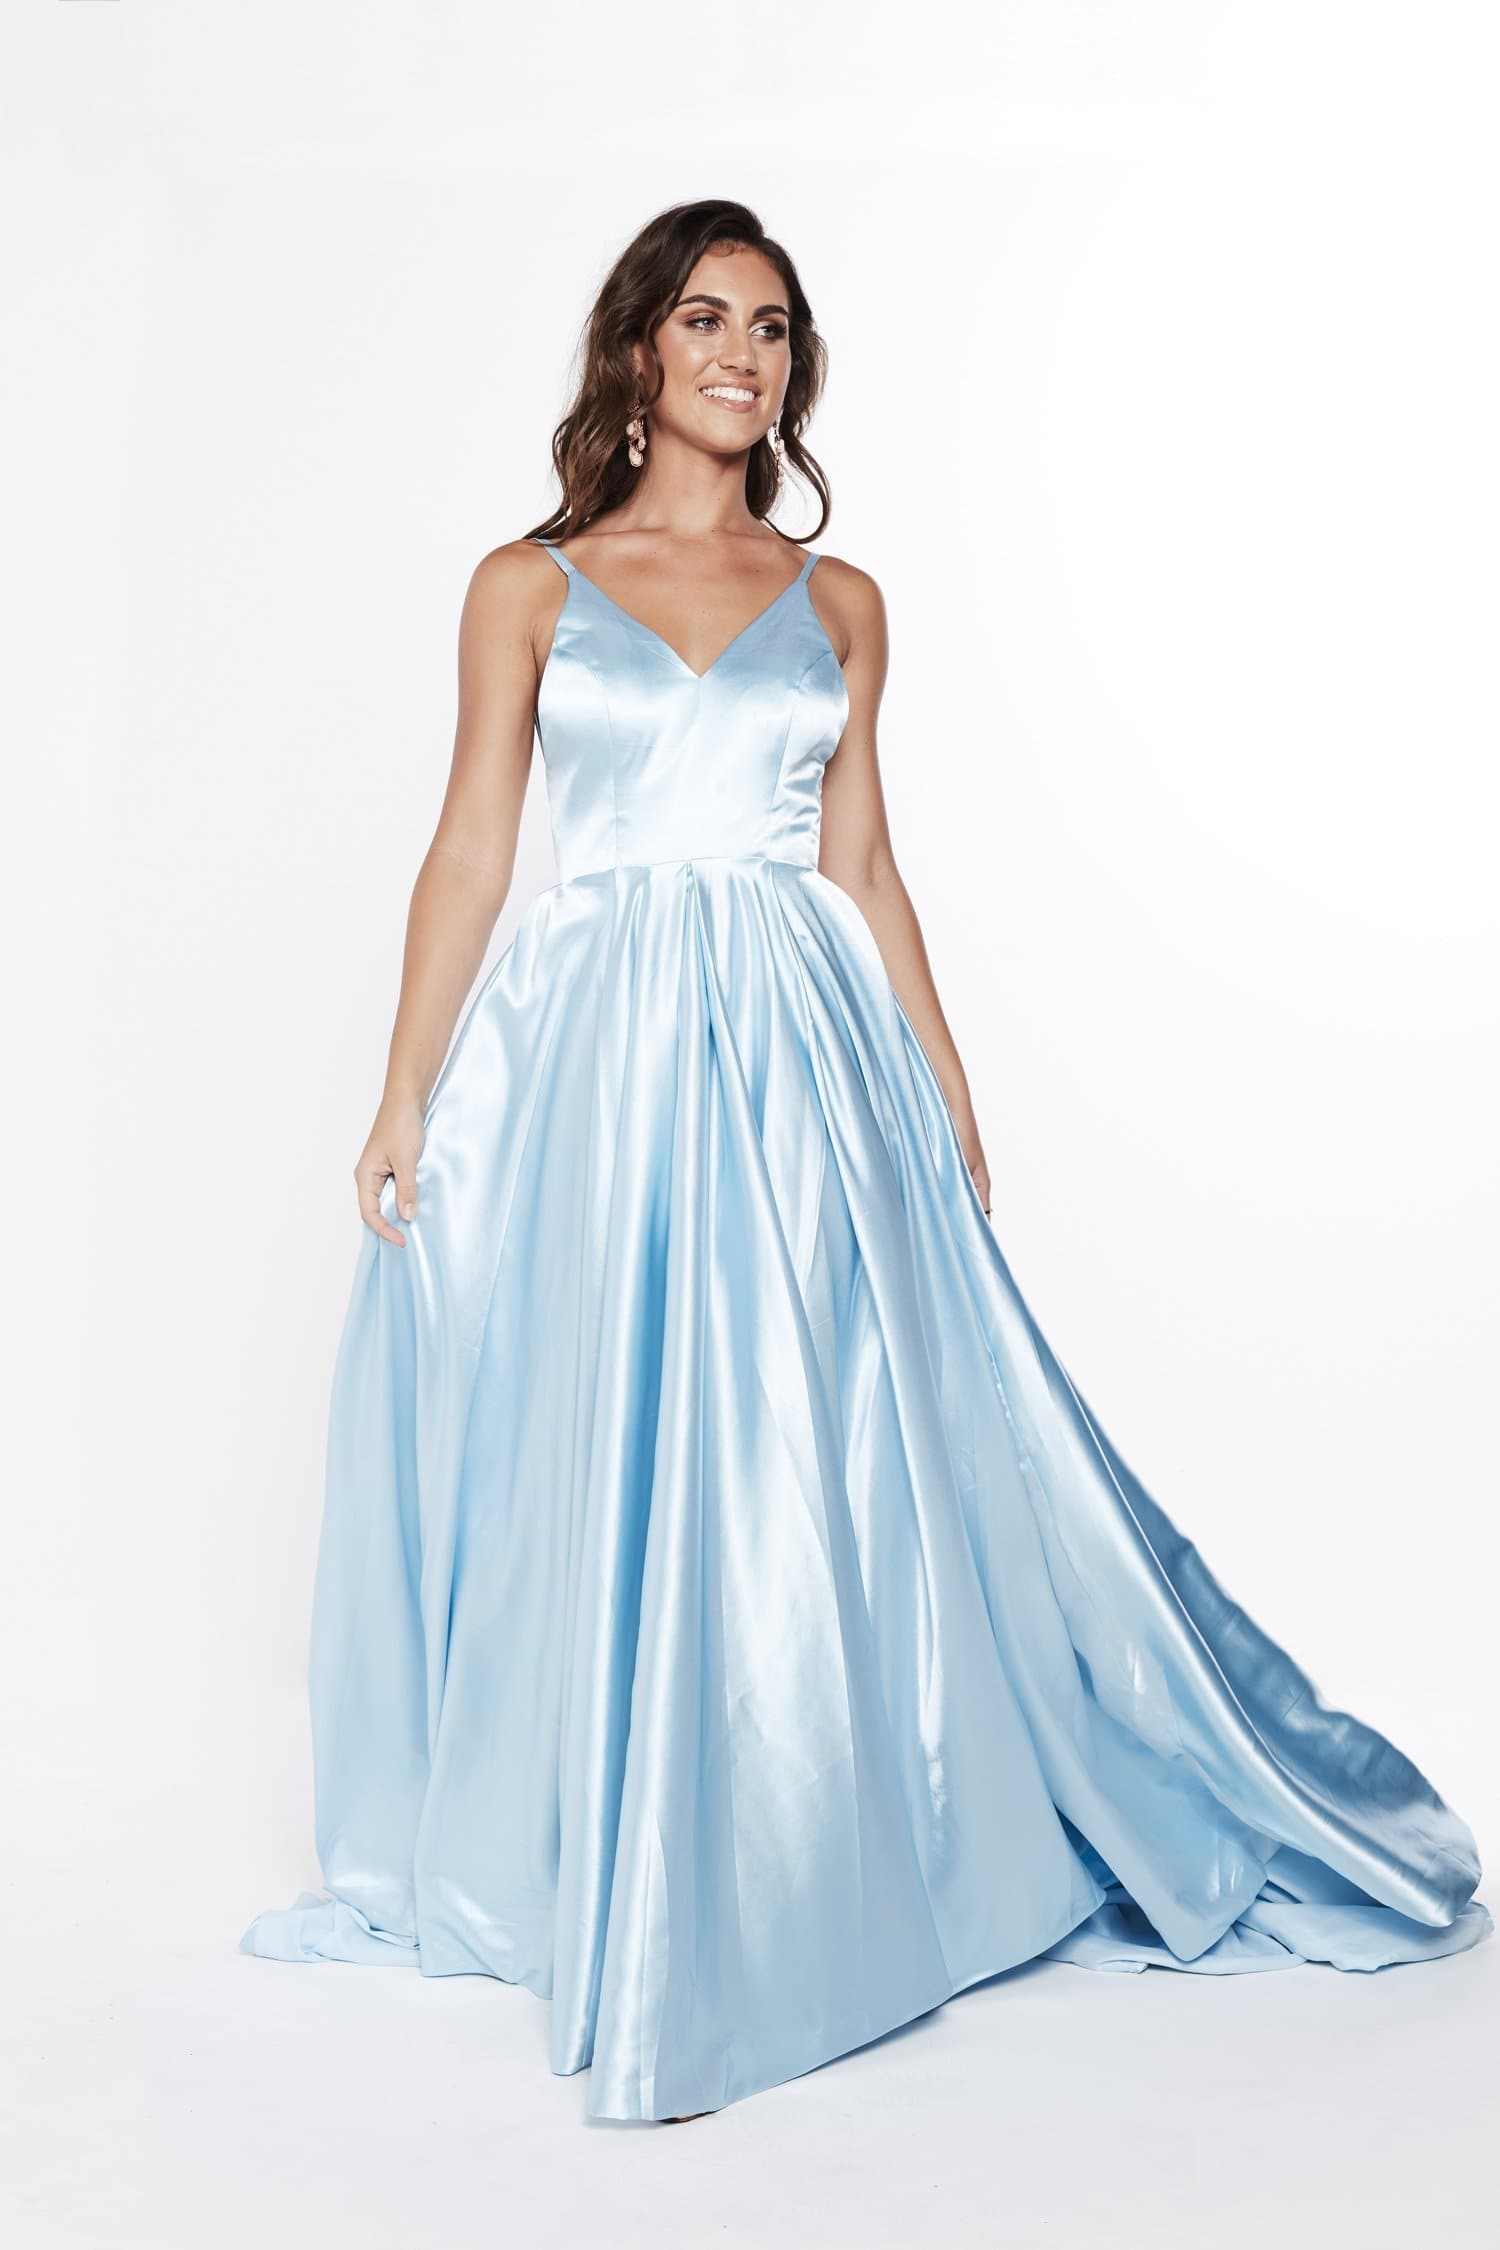 A&N Salome - Sky Blue Satin Gown with Low Back and V Neckline